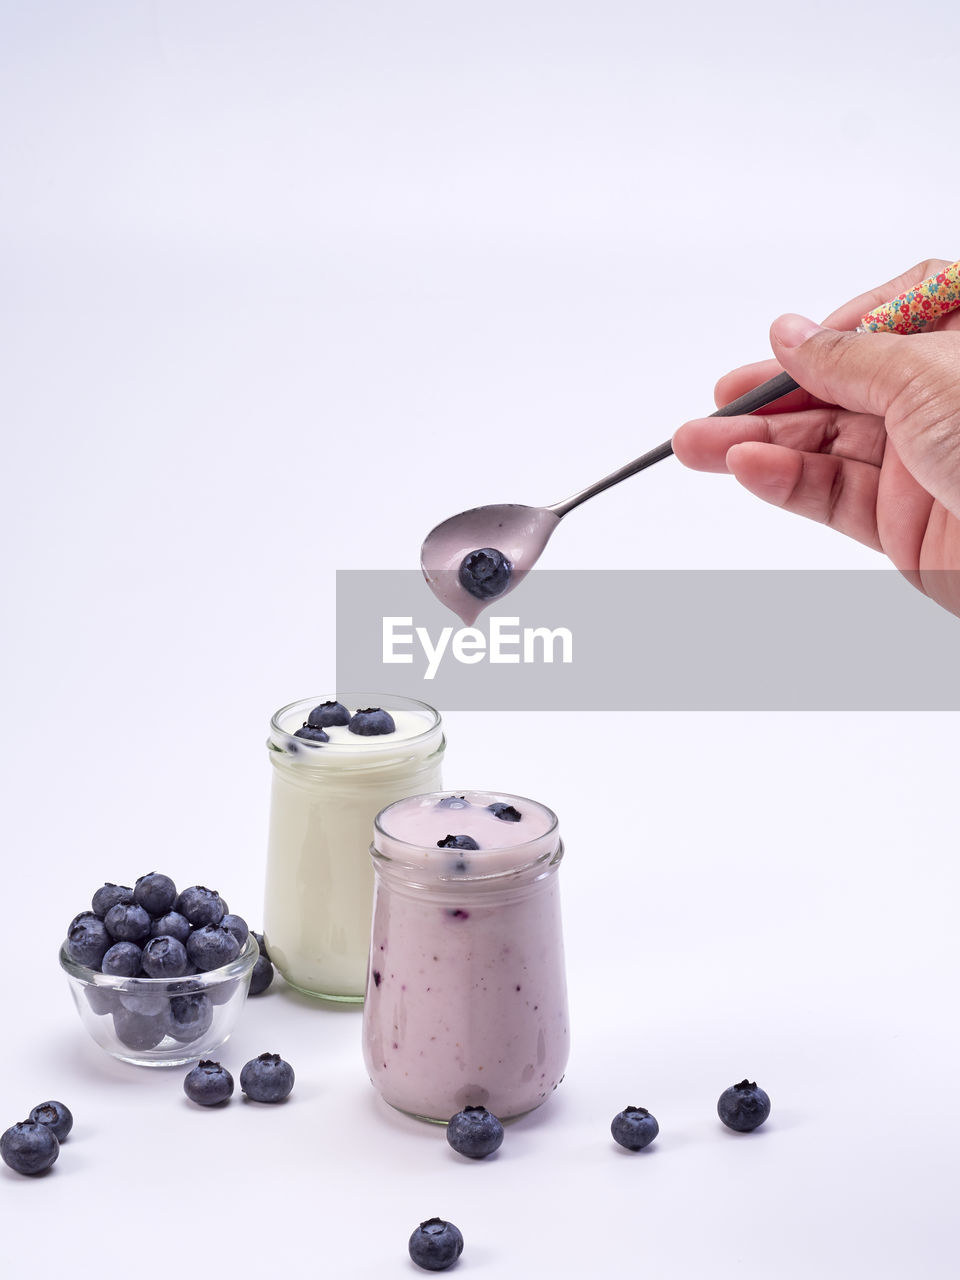 food and drink, human hand, hand, berry fruit, food, freshness, blueberry, one person, human body part, healthy eating, studio shot, fruit, indoors, white background, spoon, kitchen utensil, unrecognizable person, table, wellbeing, holding, temptation, breakfast, finger